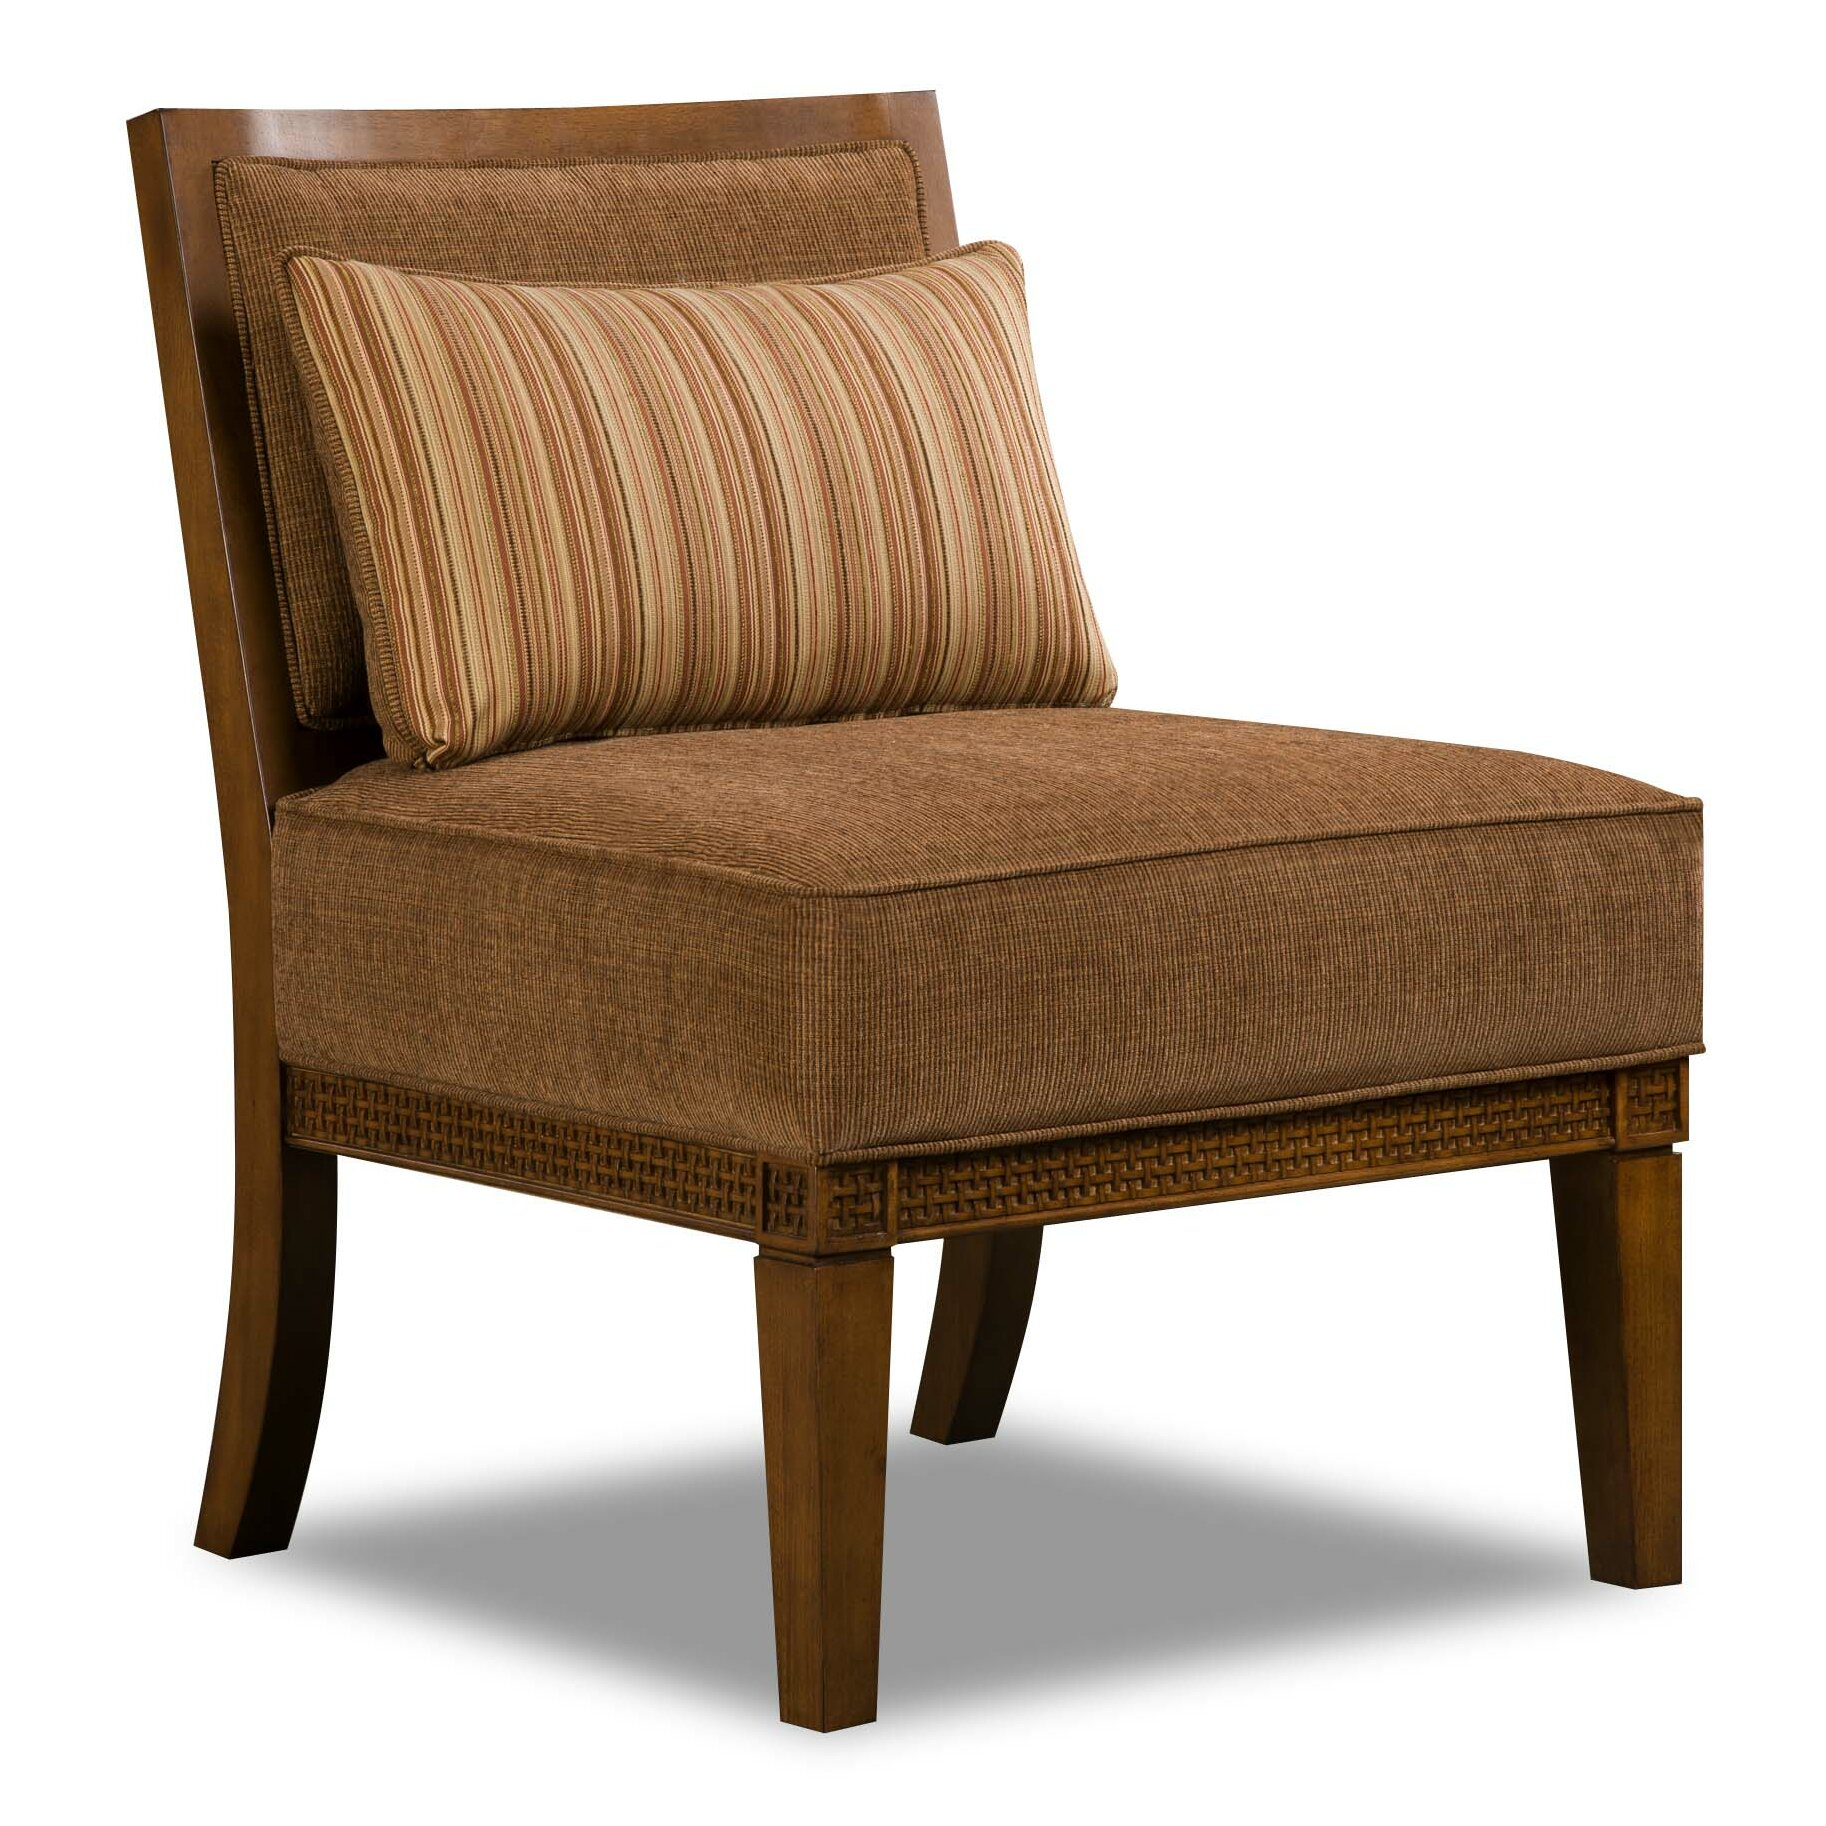 Simmons upholstery sydney living room collection reviews Living room furniture sydney